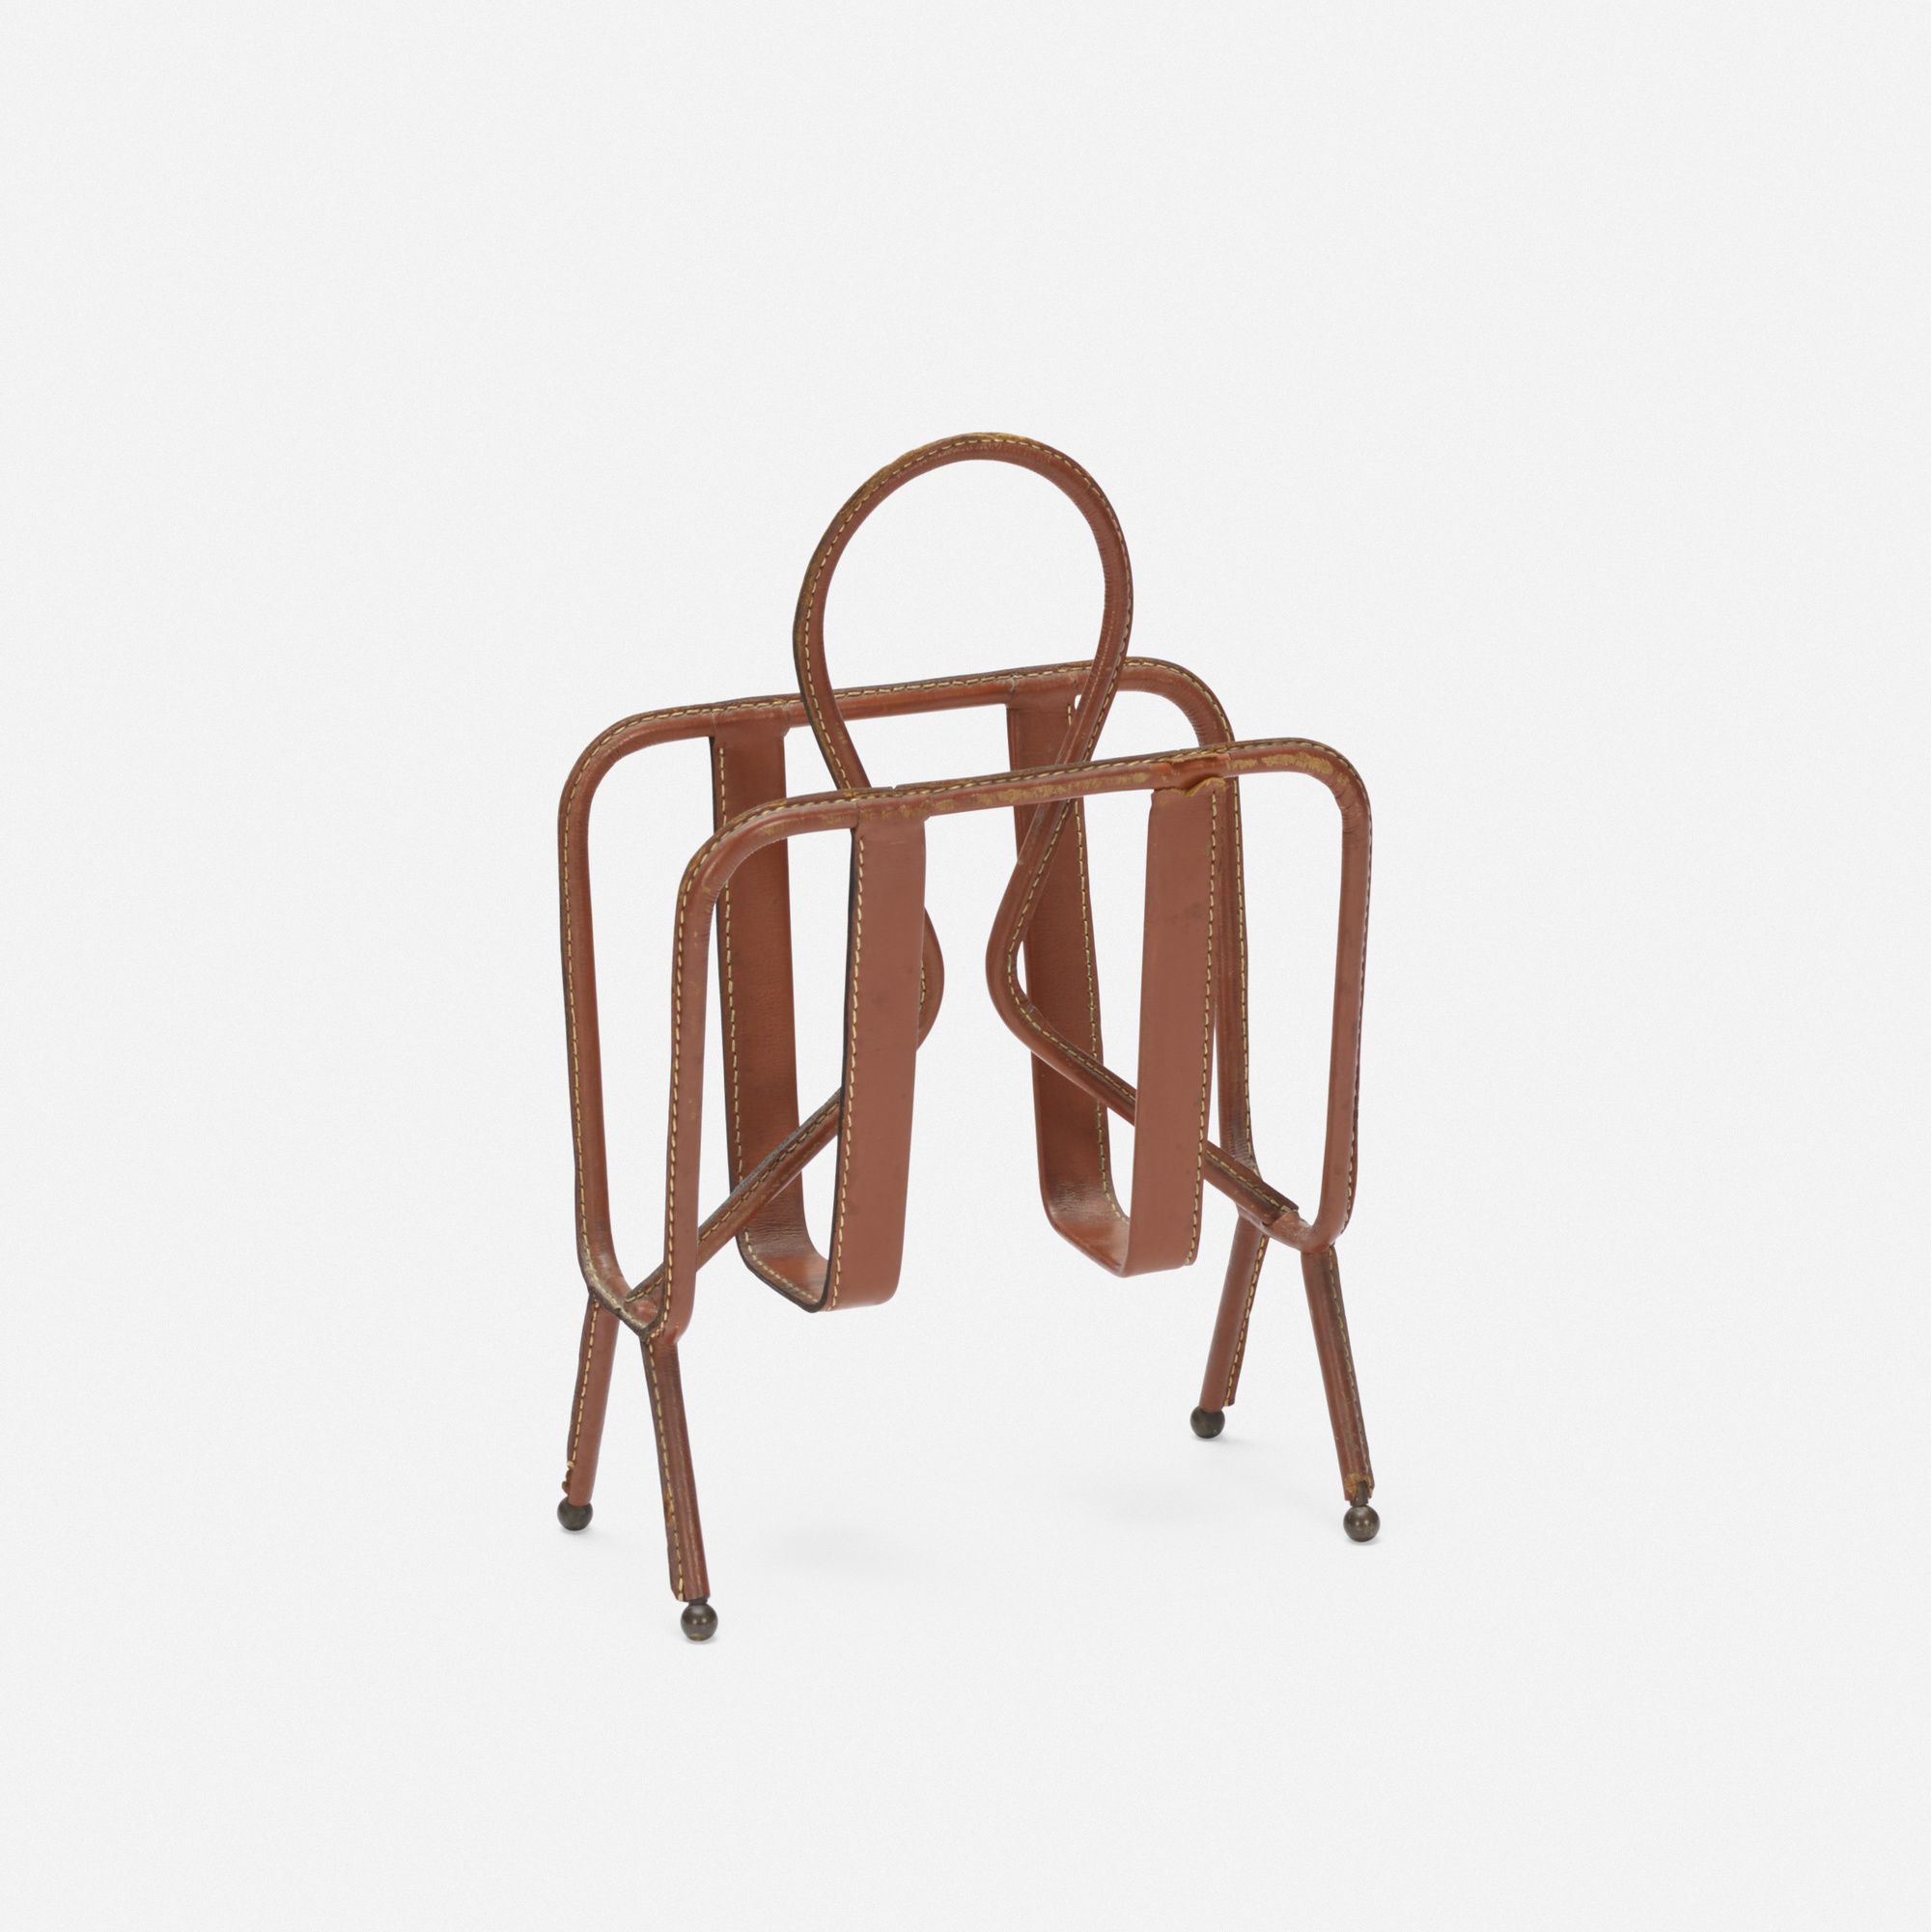 339: Jacques Adnet / magazine stand (1 of 2)